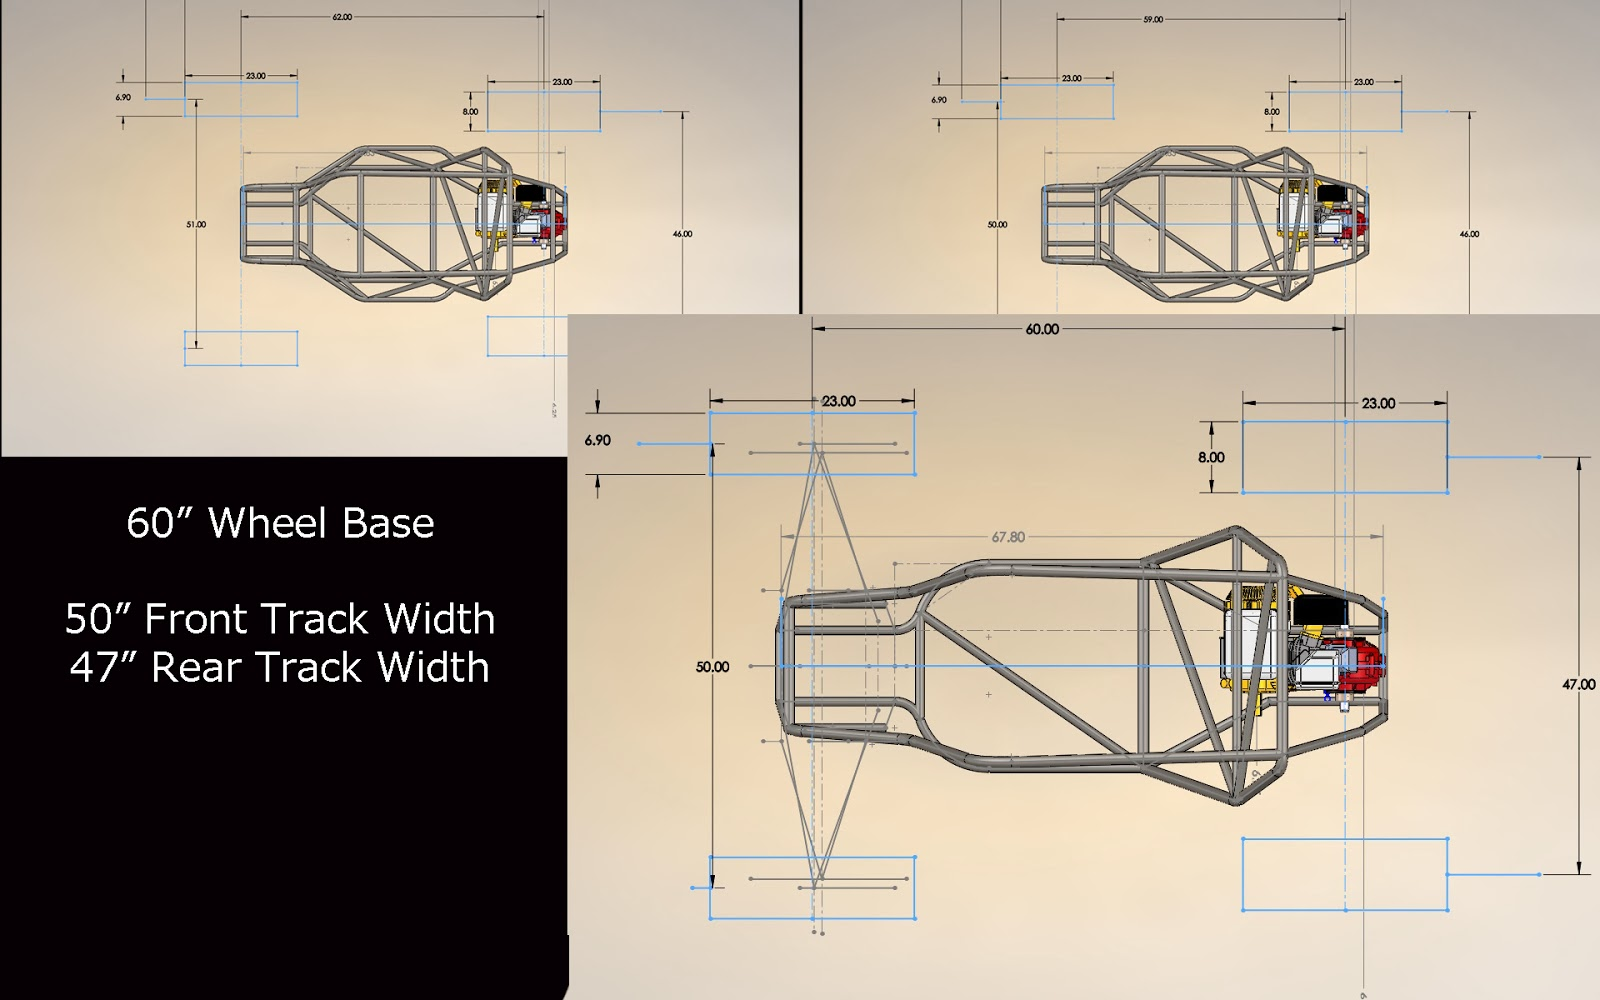 Ucsb Racing Baja Sae November 2013 50 Wiring Diagram Frame V21 Not Shown As Been Extended By A Few Inches After Drafting Wheelbase And Track Widths Over V20 We Have Come To The Following Target